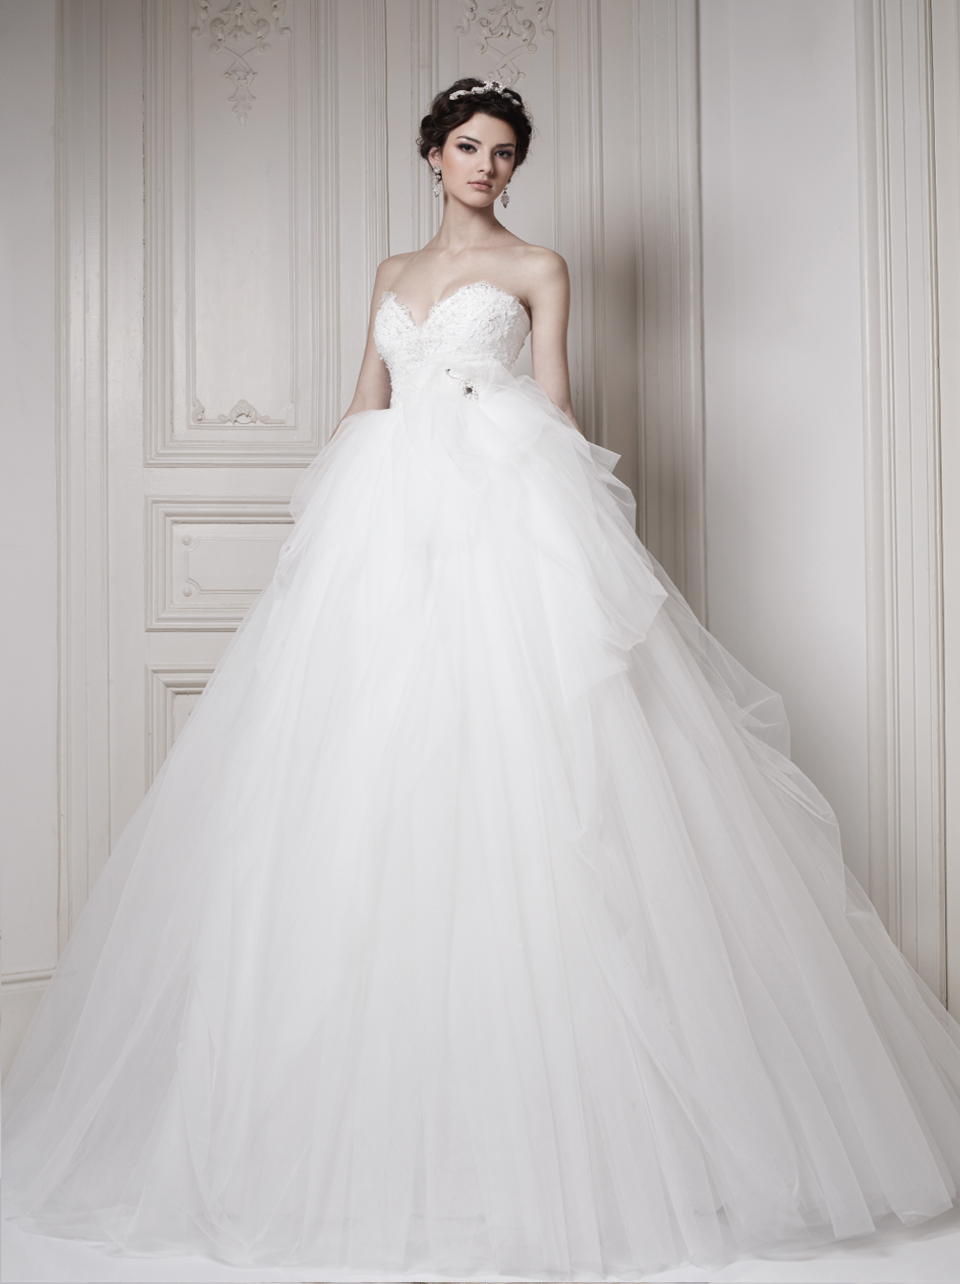 Glamorous Ersa Atelier Wedding Dresses 2014 Collection - MODwedding